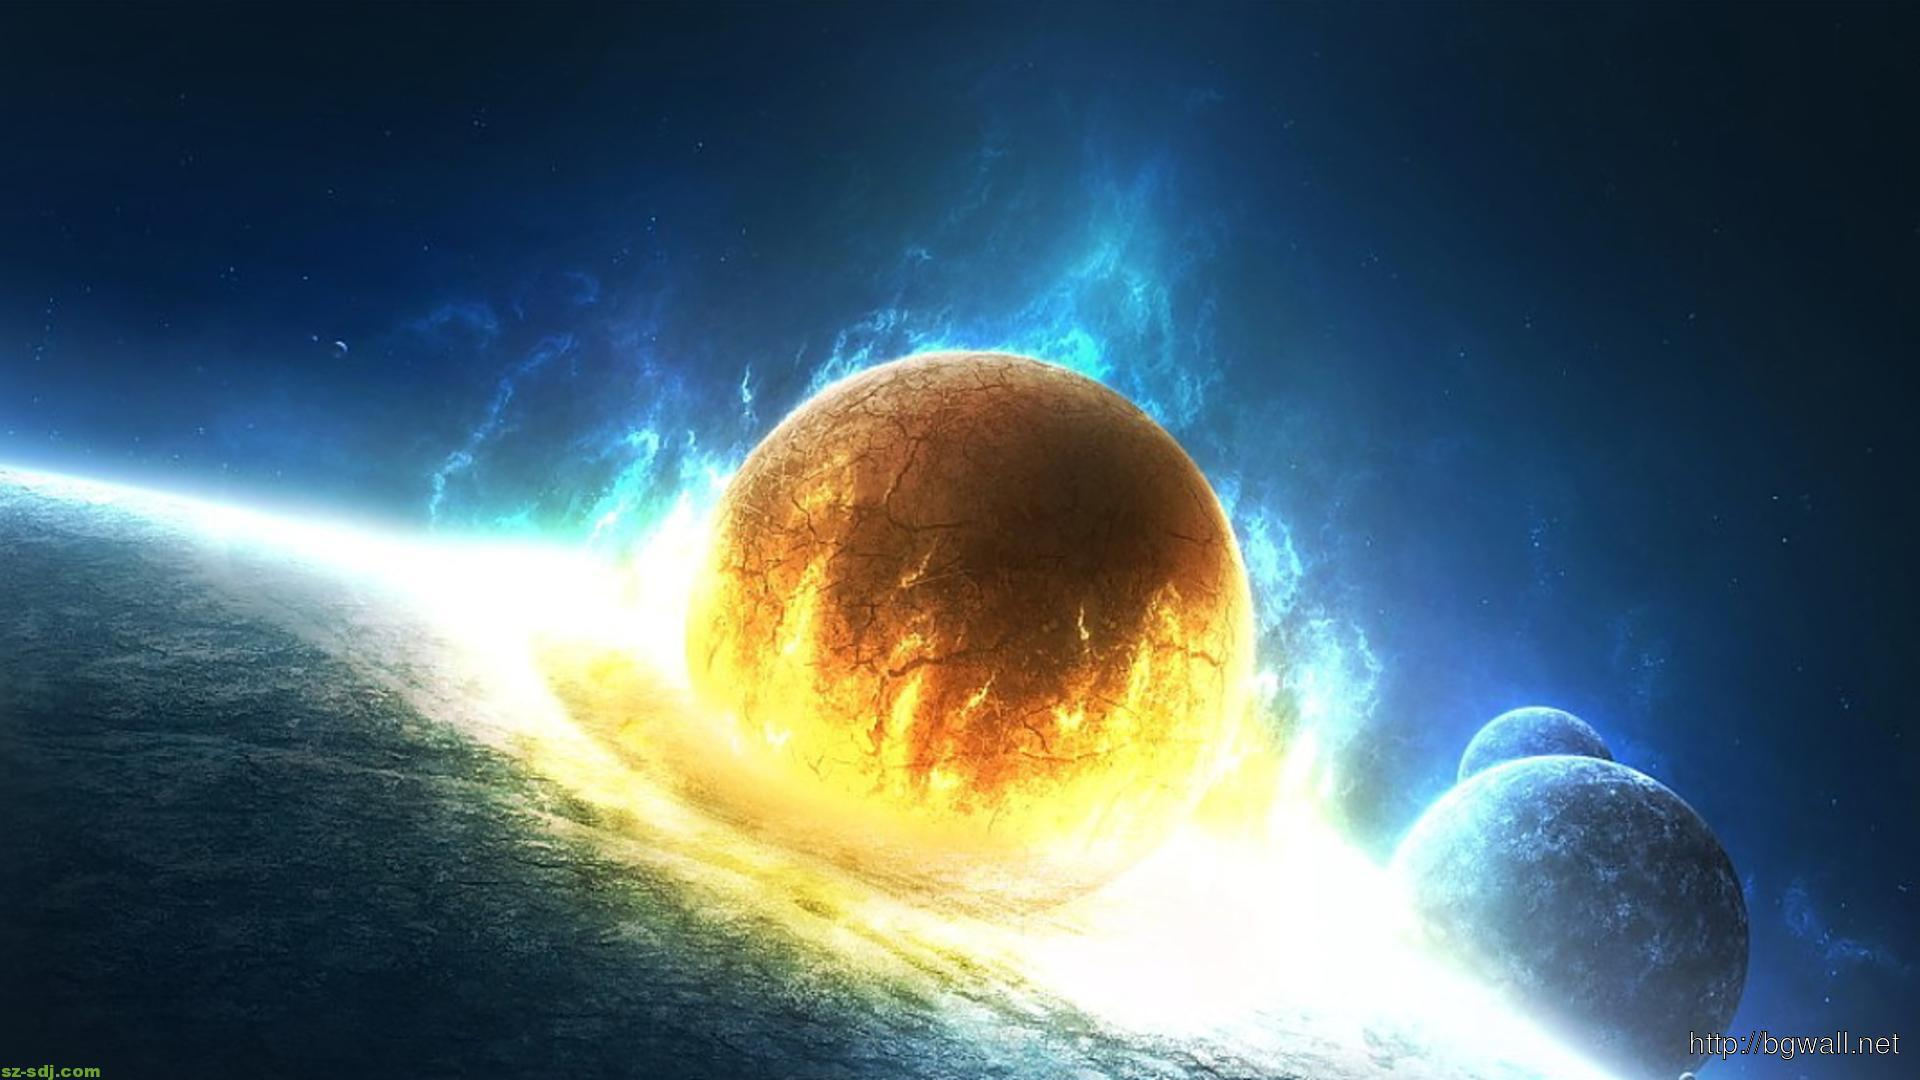 asteroid-meteor-wallpaper-high-definition